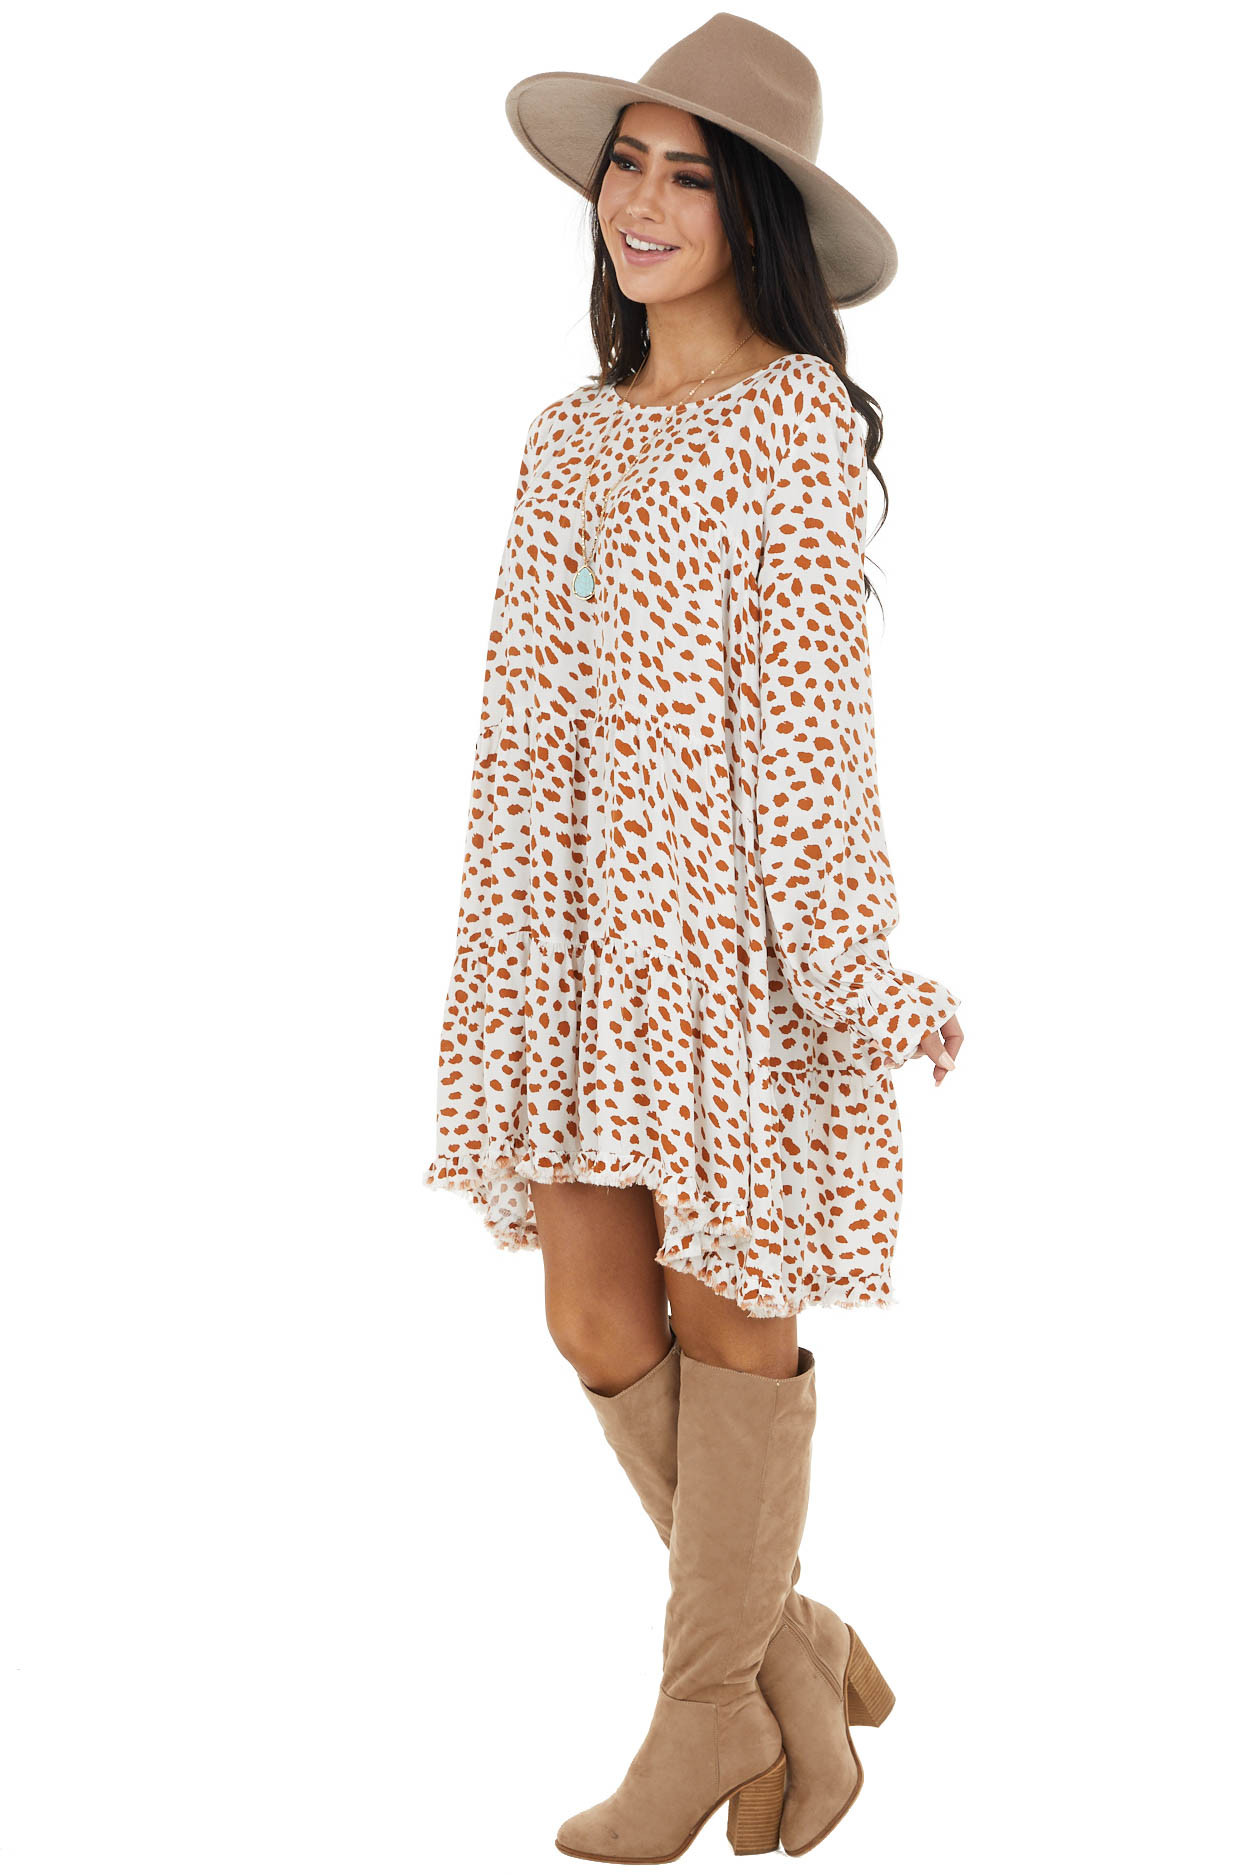 White and Caramel Cheetah Print Tiered Dress with Frayed Hem